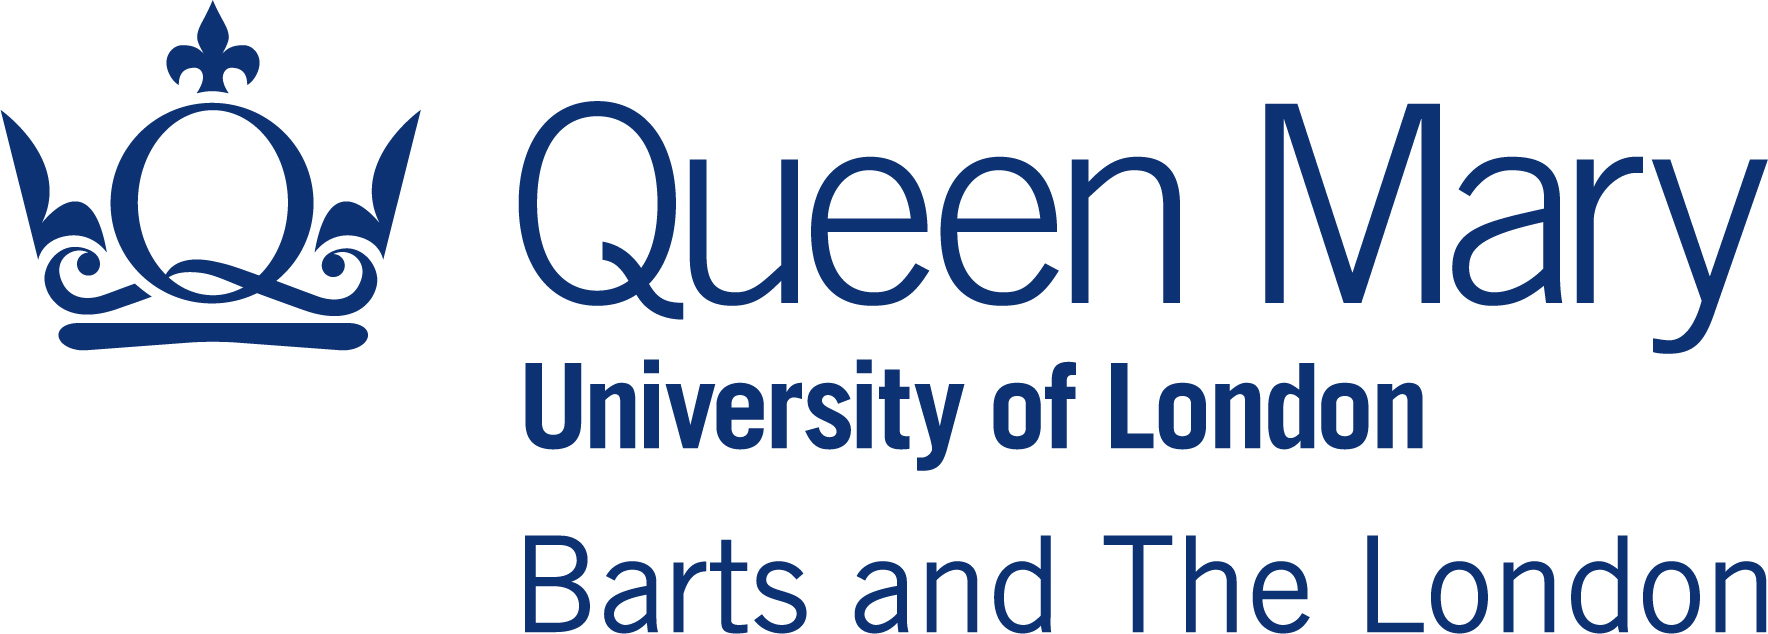 Queen Mary University of London, Barts and The London